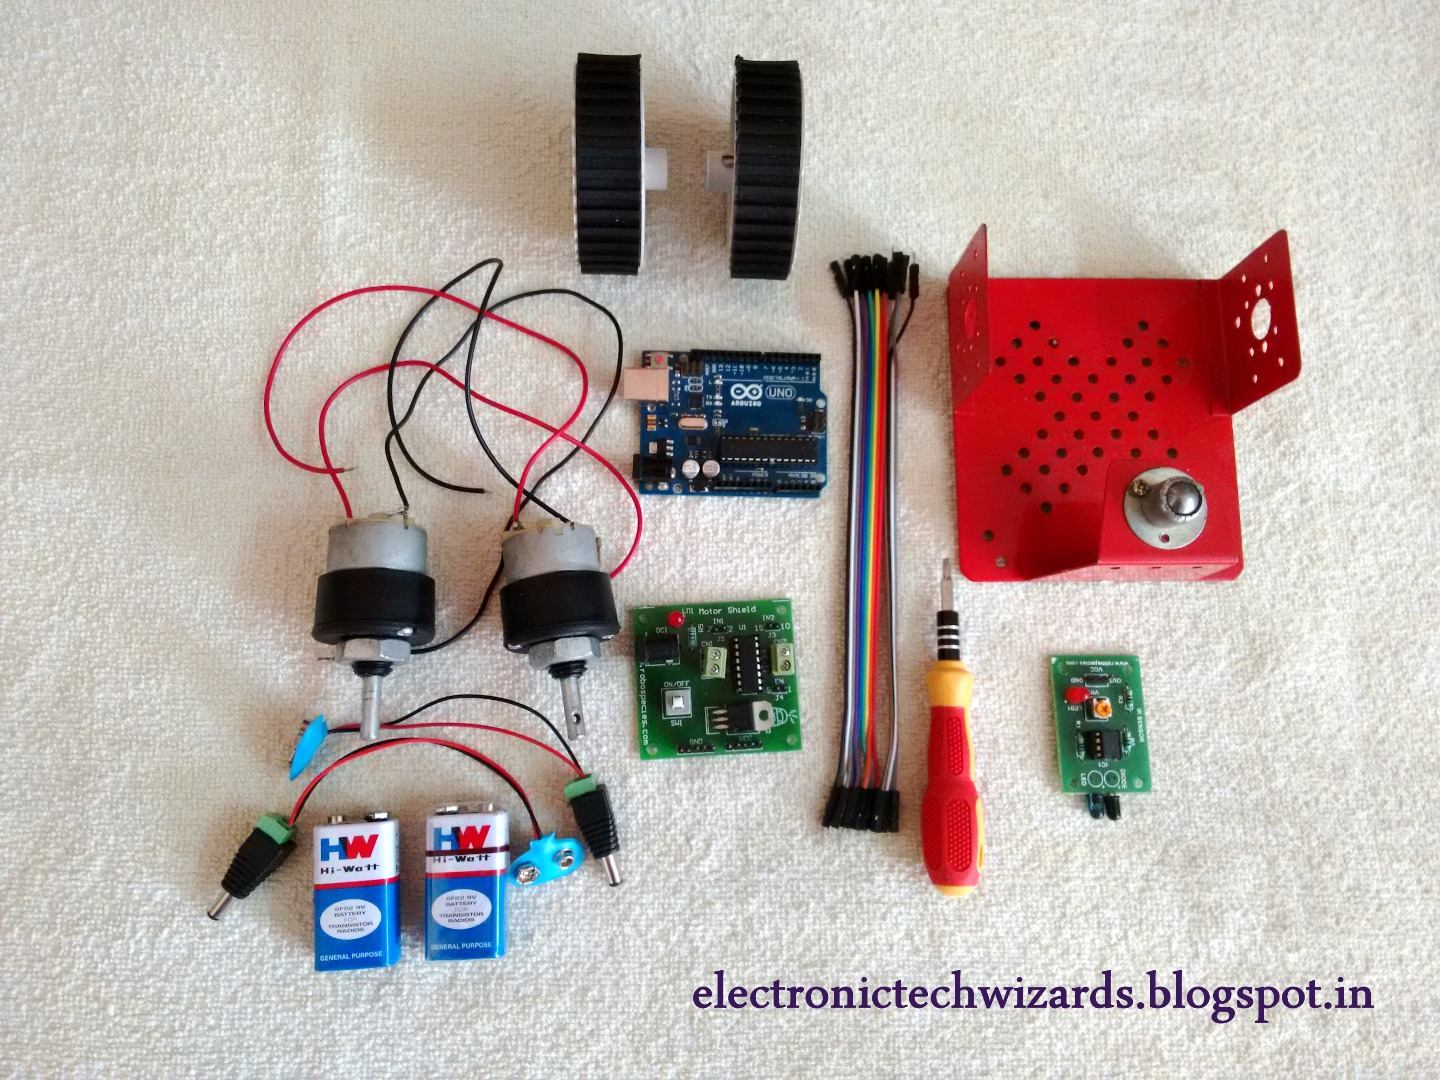 Picture of COMPONENTS NEEDED: